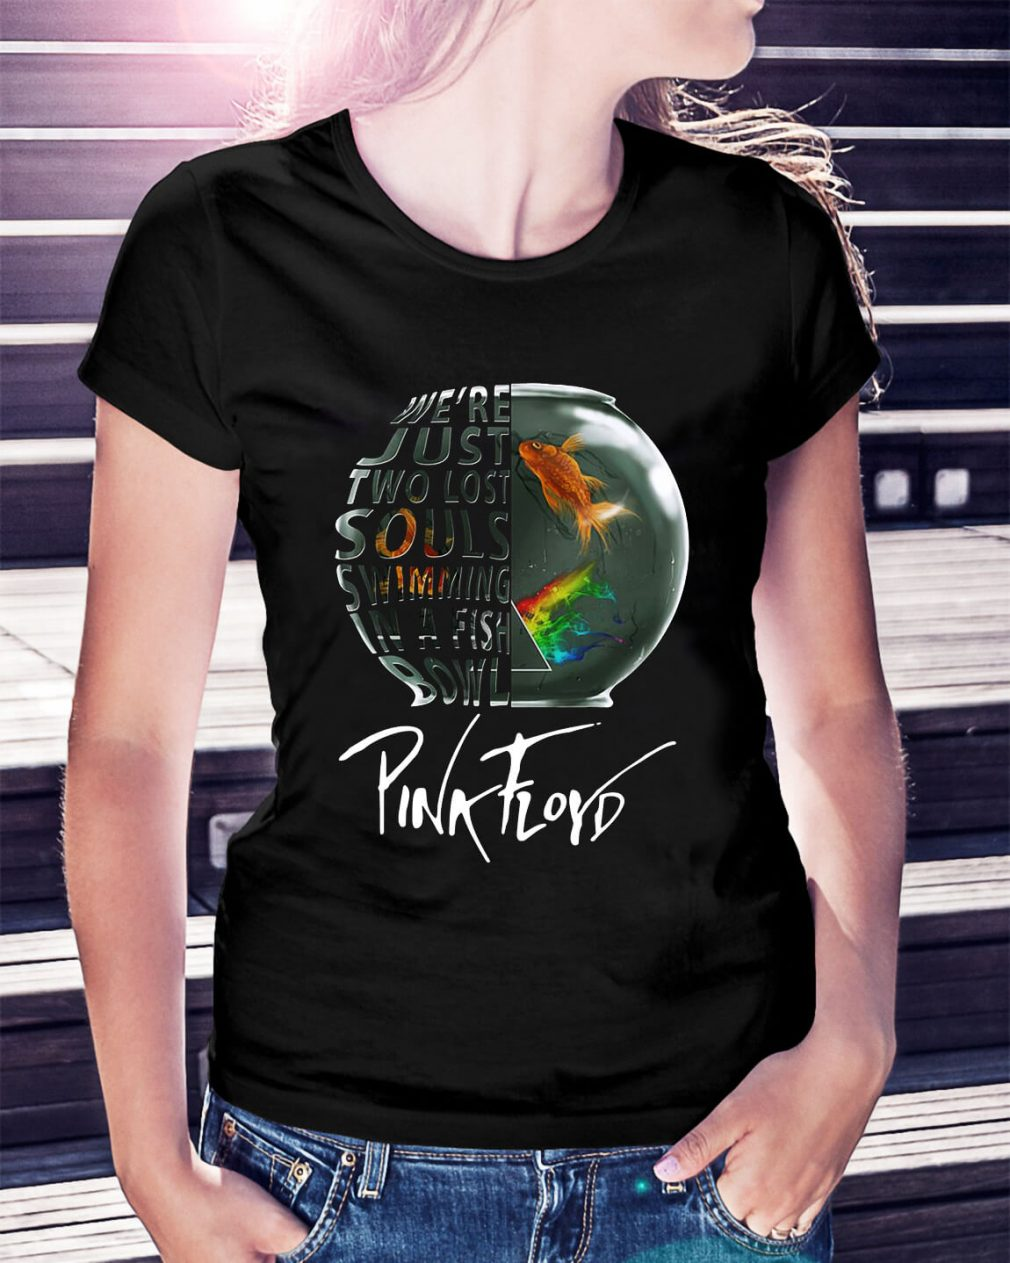 We're just two lost souls swimming in a fishbowl Pink Floyd Ladies Tee